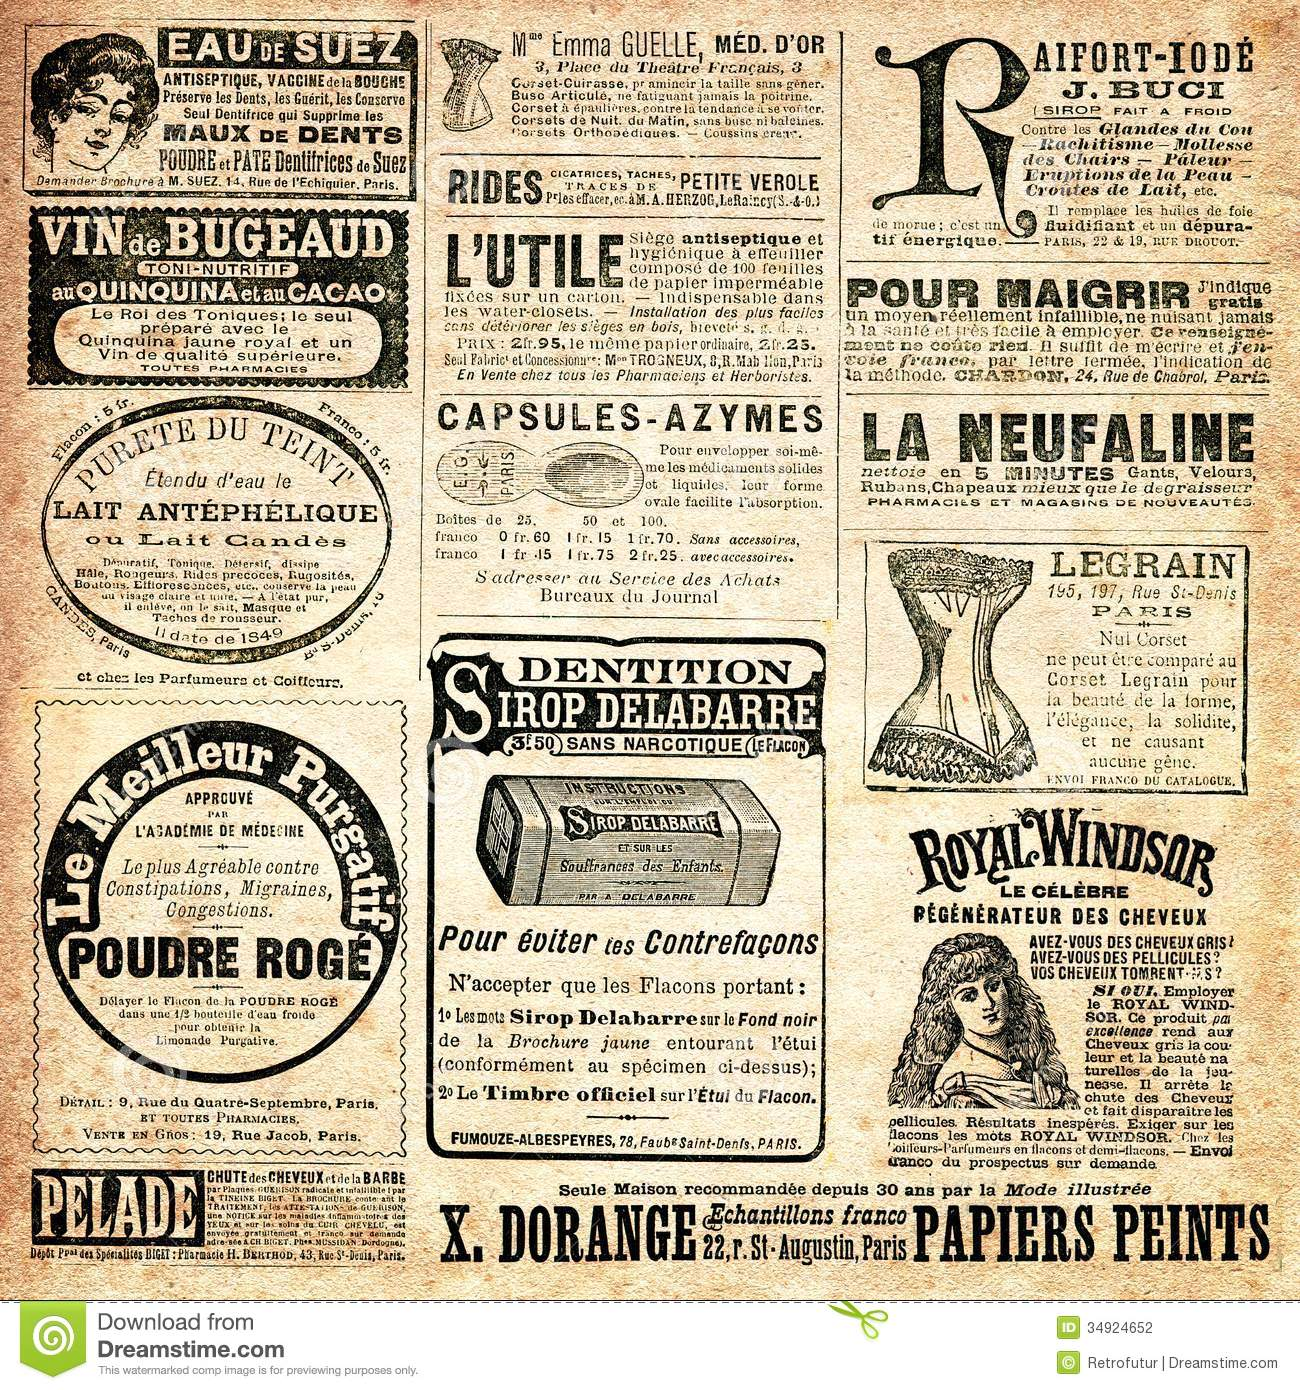 4k Newspapers Wallpapers High Quality Newspaper Collage Wallpaper